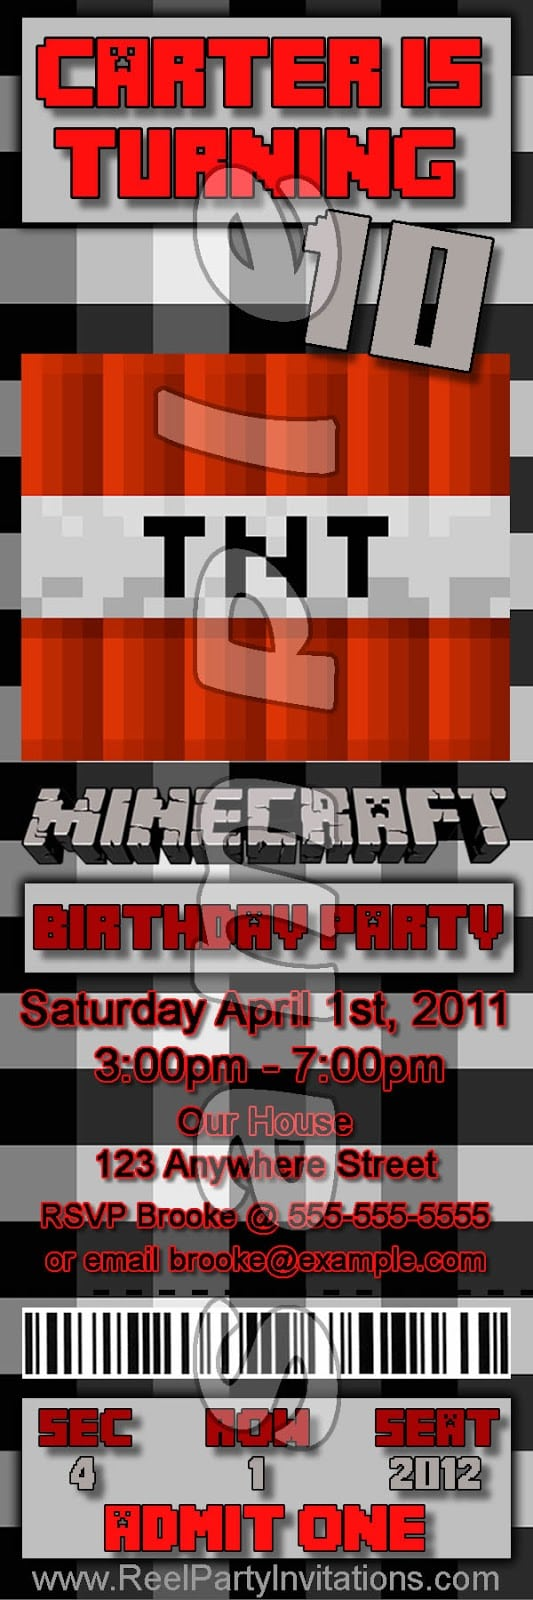 Reel Party Invitations